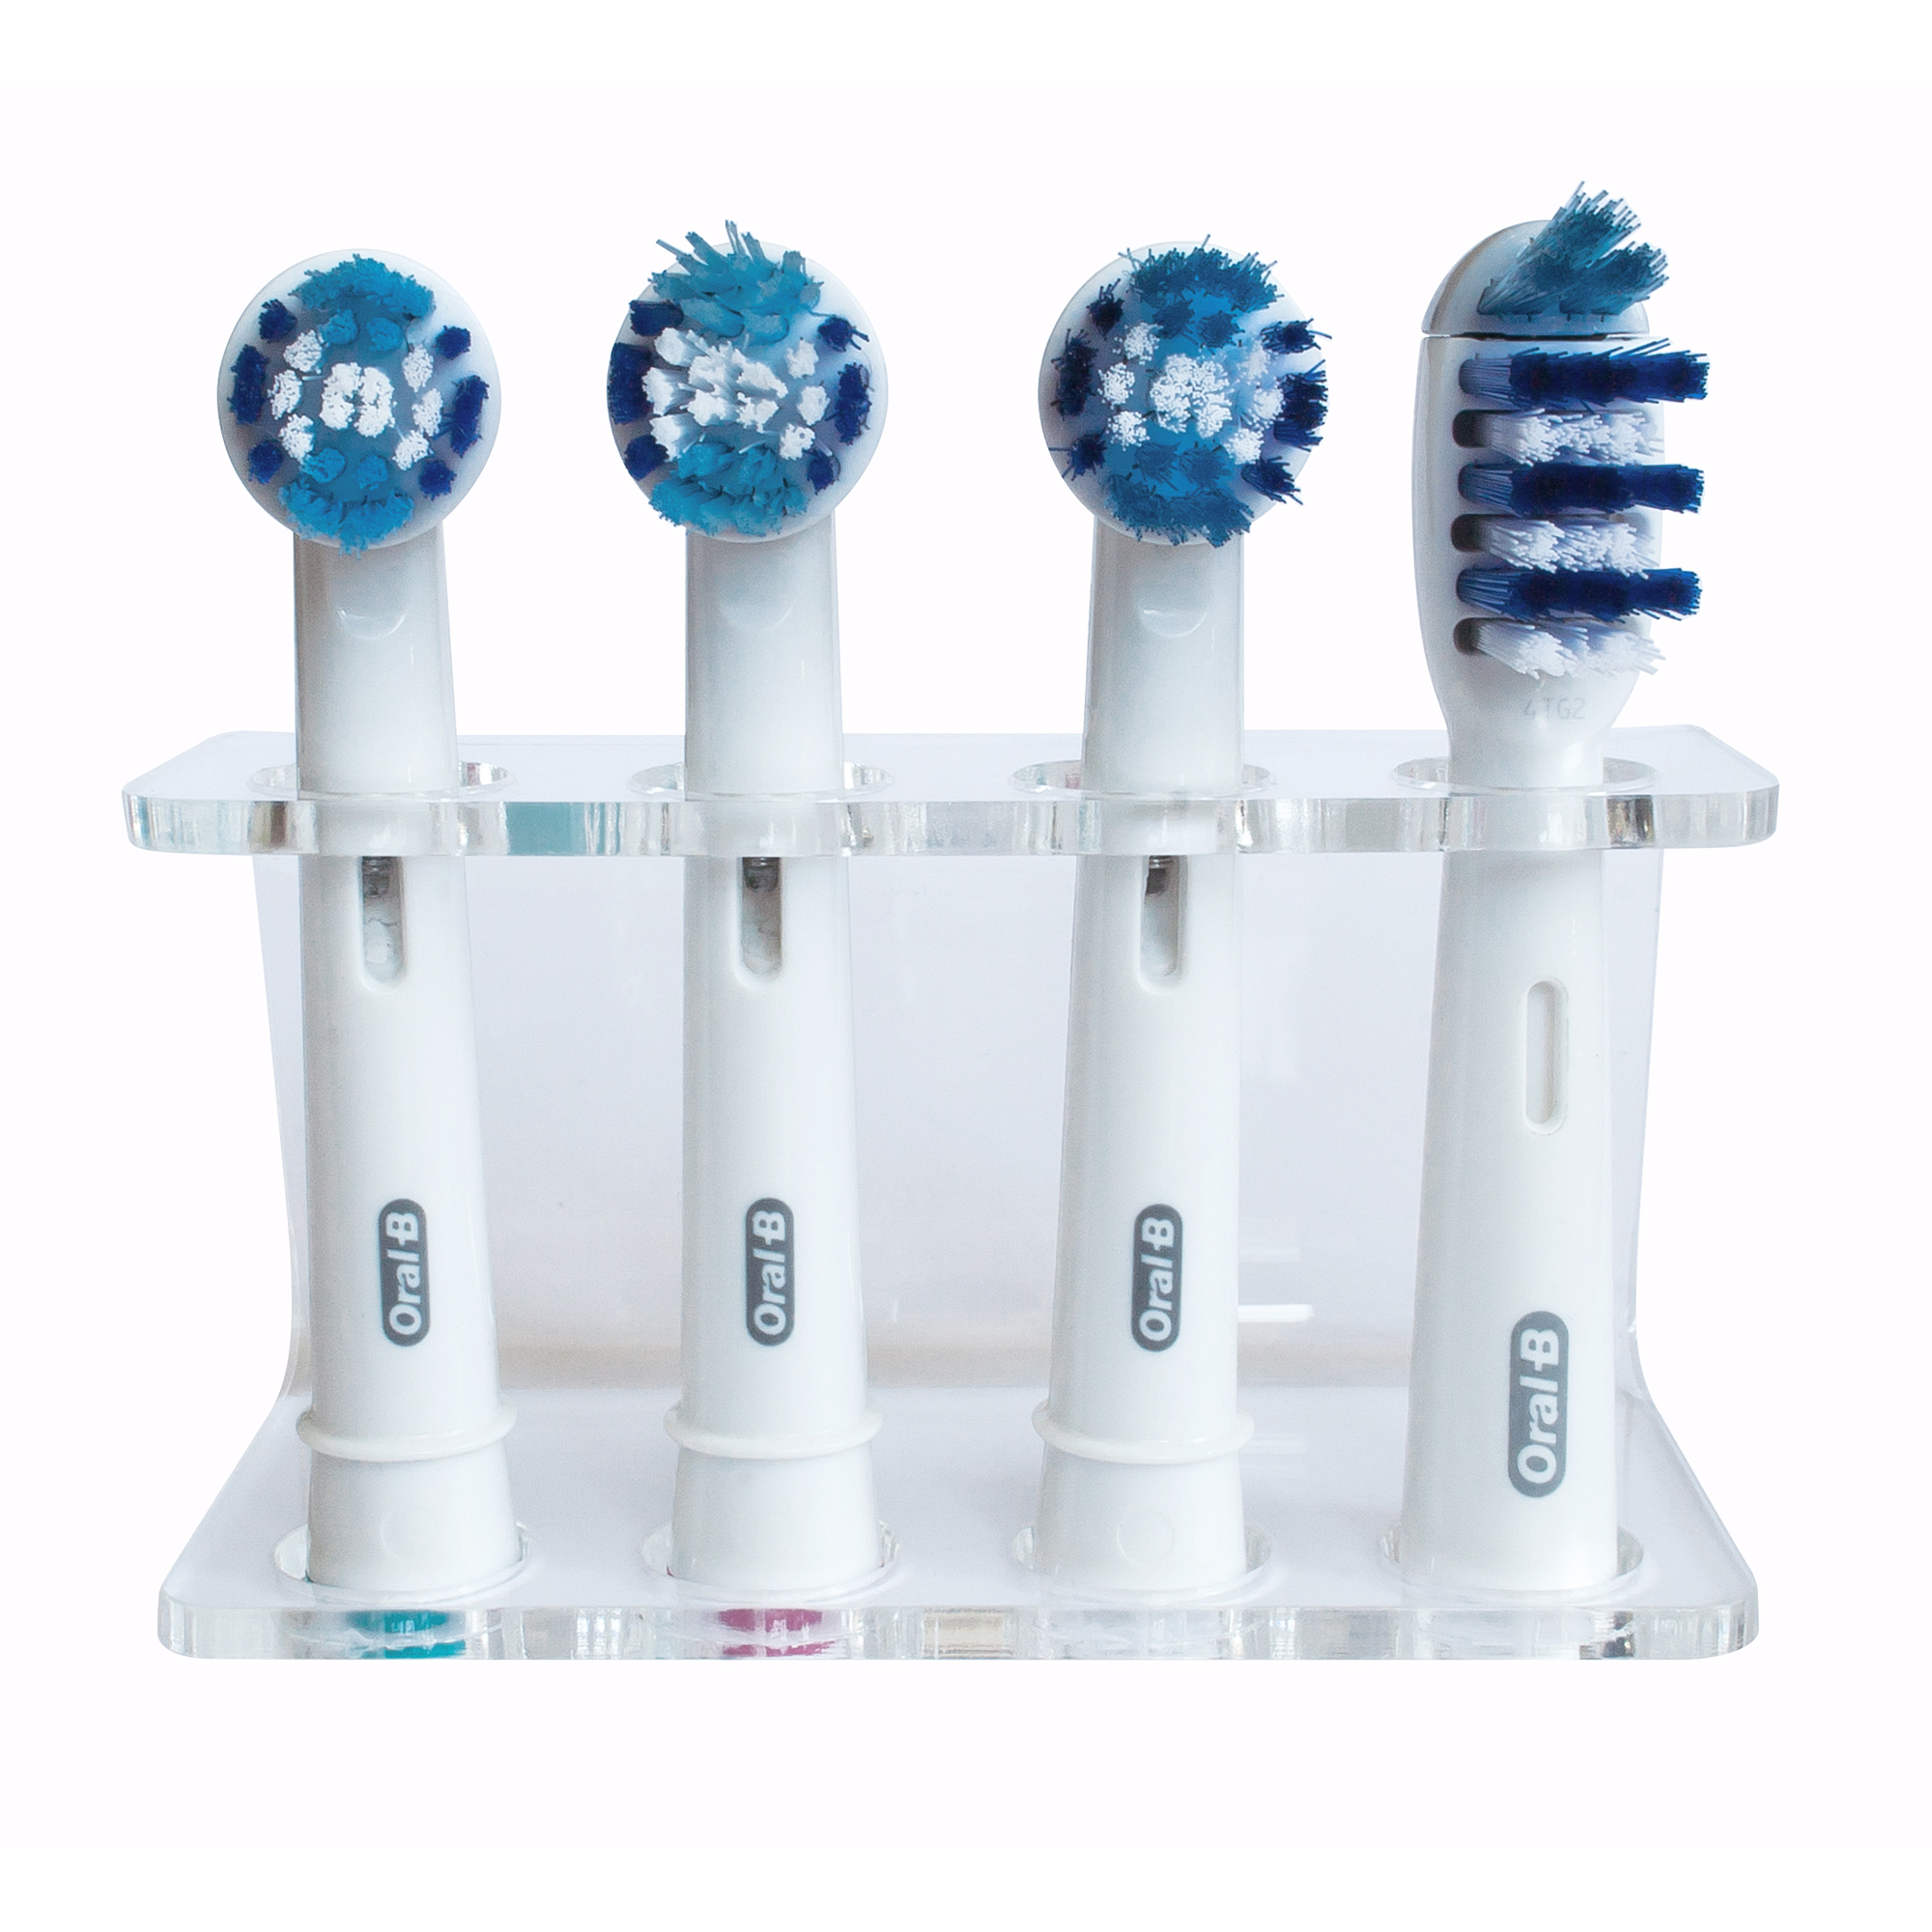 seemii clear electric toothbrush head holder for oral b heads. Black Bedroom Furniture Sets. Home Design Ideas